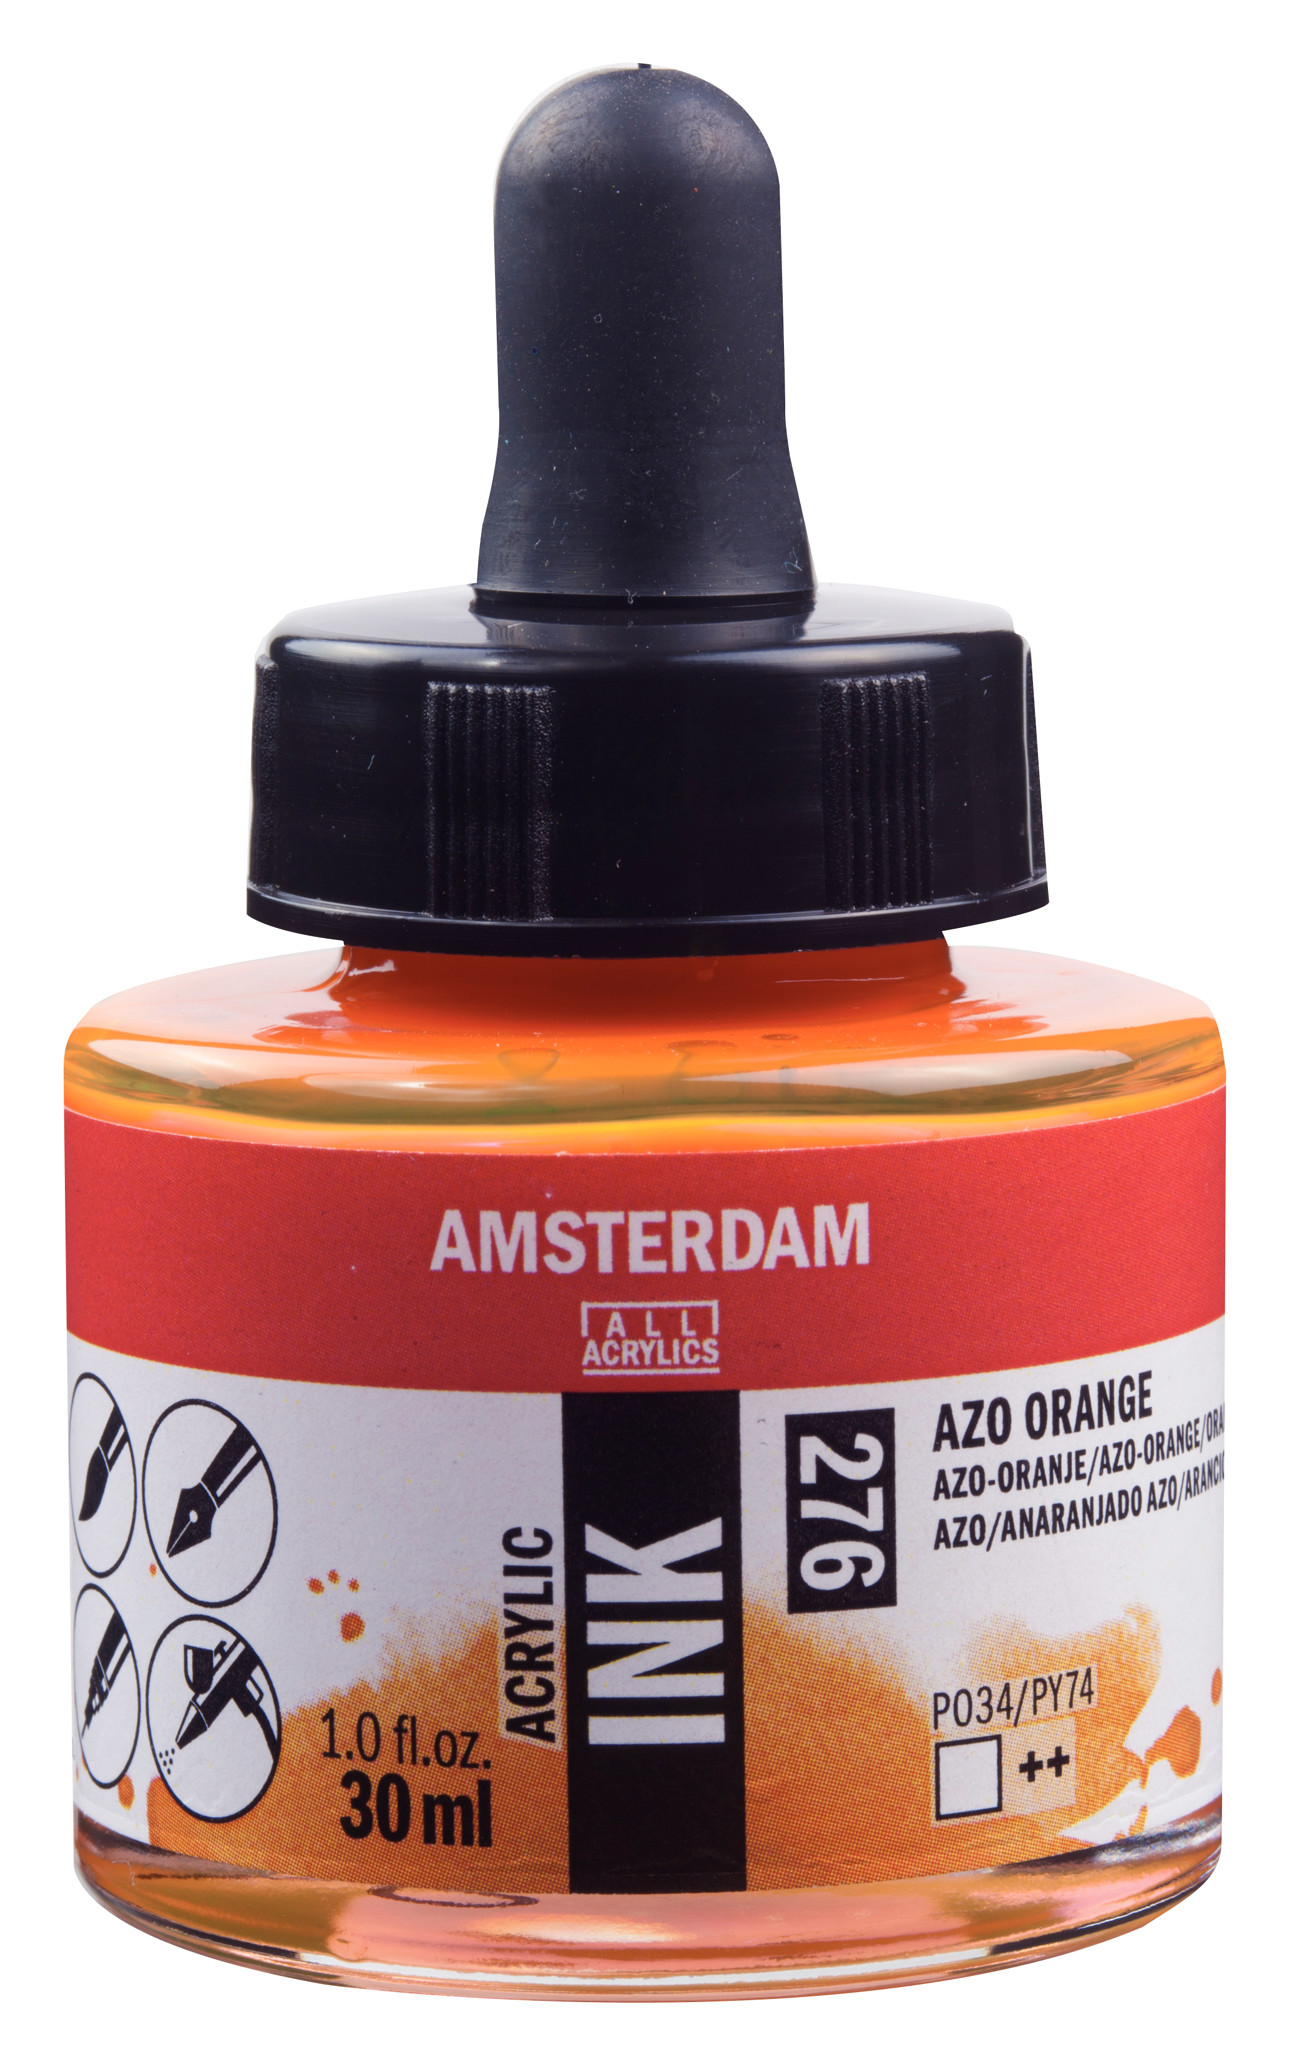 Amsterdam Acrylic Ink Bottle 30 ml Azo Orange 276